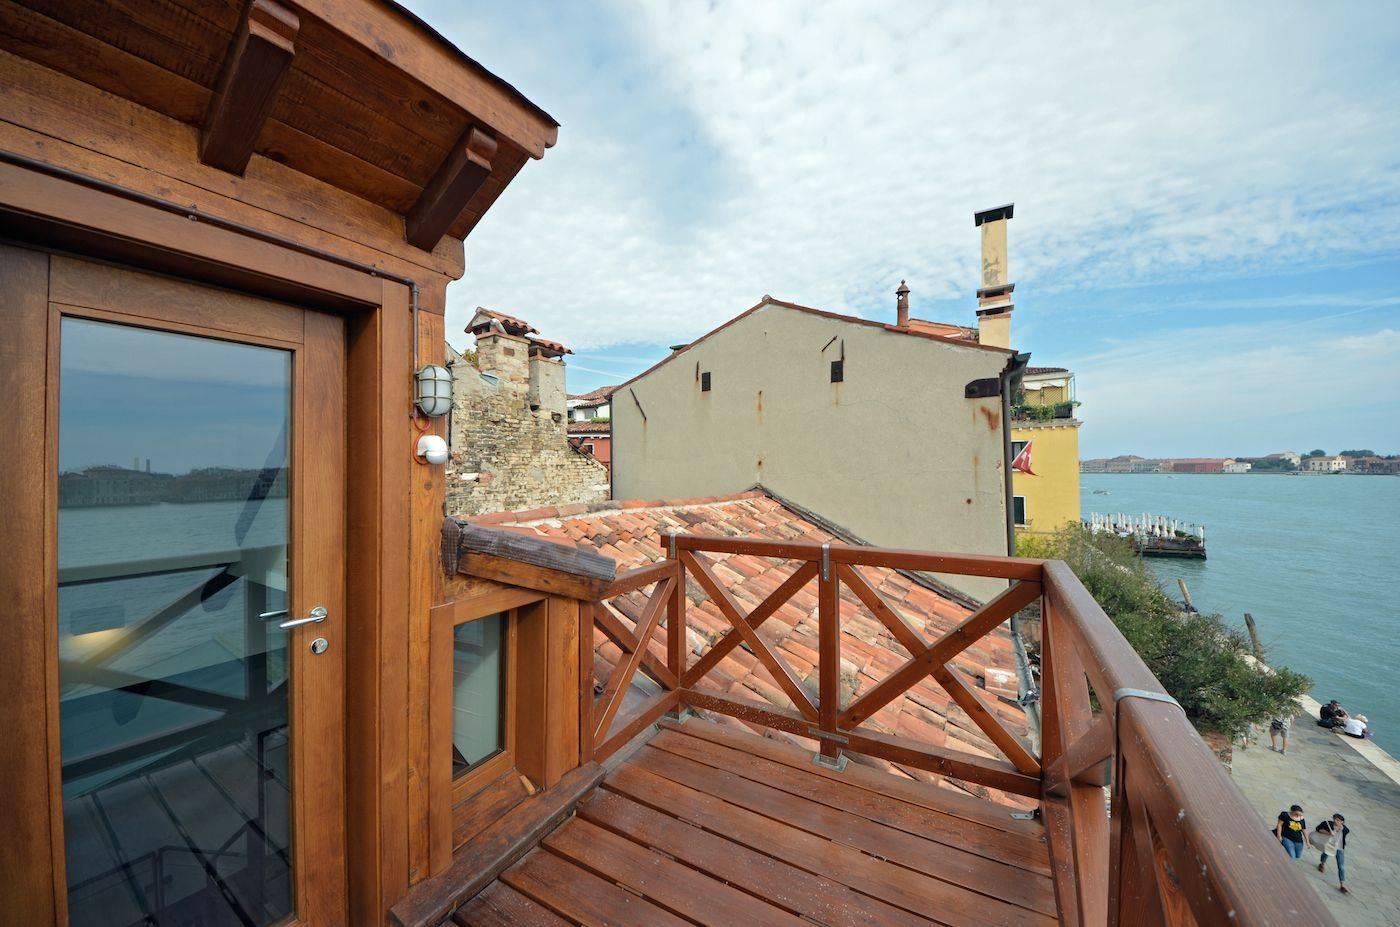 roof-top terrace of the Dolce Vita apartment